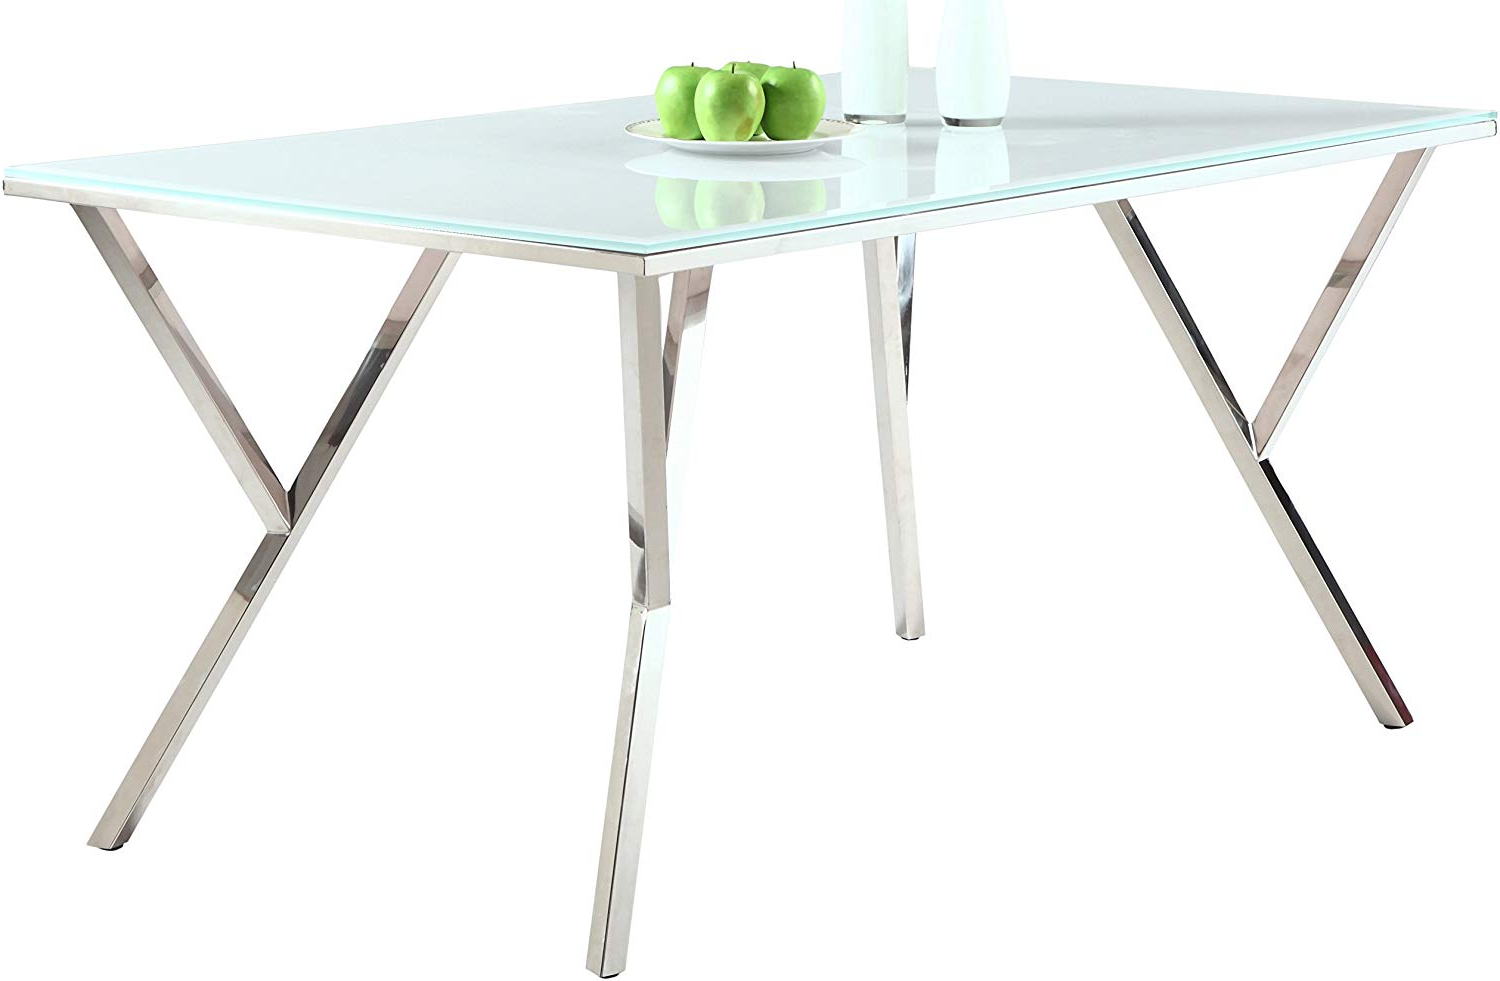 Newest Chrome Dining Tables With Tempered Glass In Amazon – Milan Dt Jaina Super White/chrome Dining Table (Gallery 14 of 30)